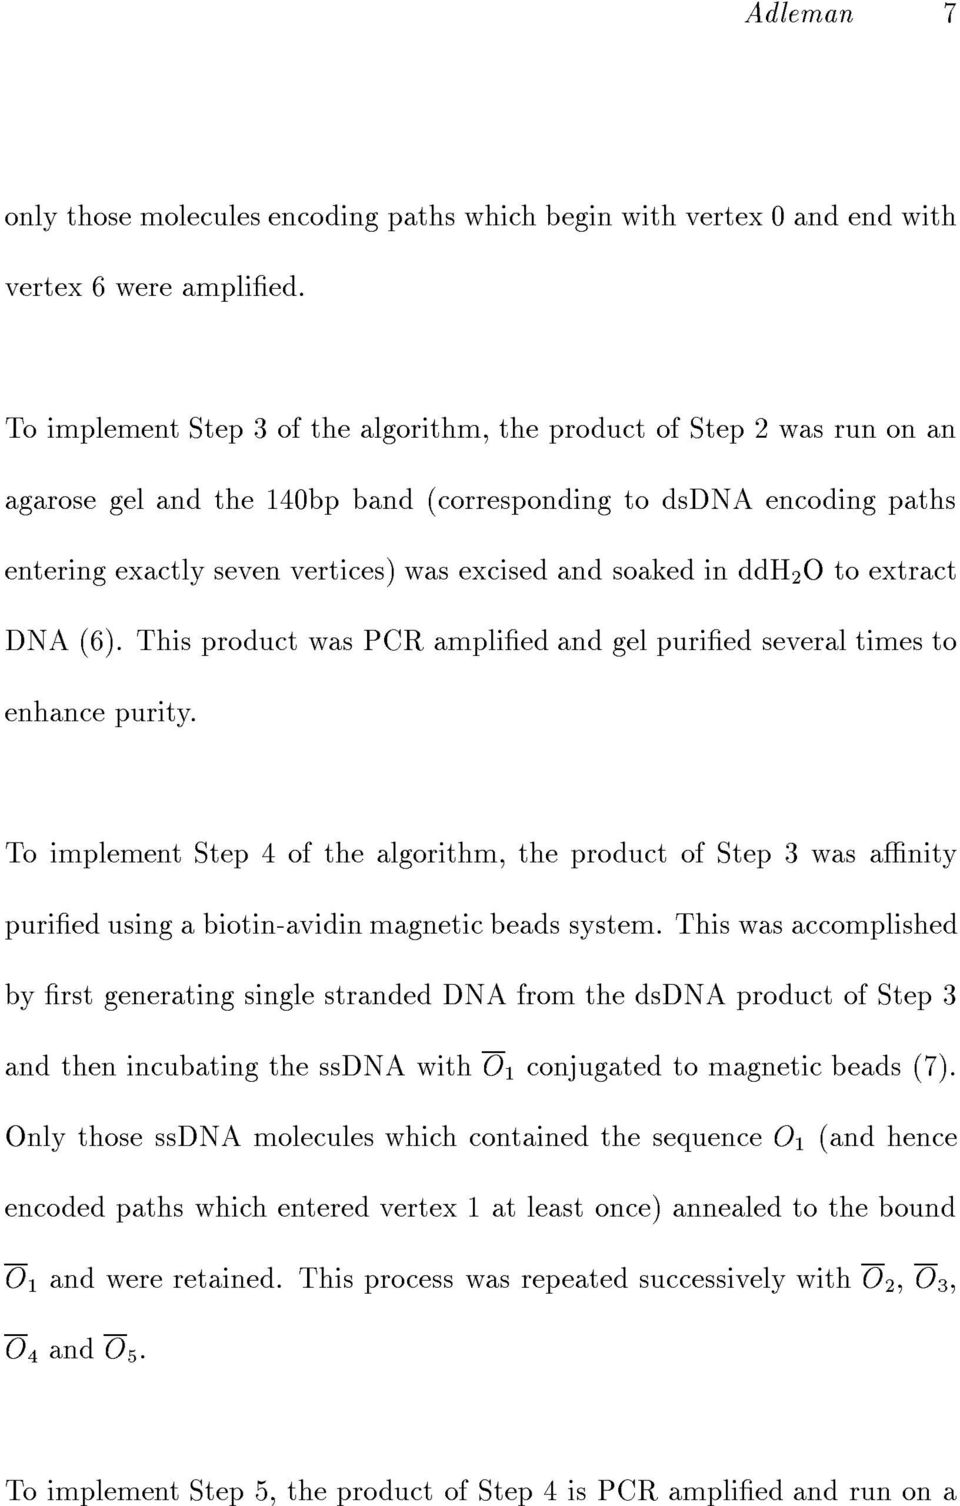 in ddh 2 Otoextract DNA (6). This product was PCR amplied and gel puried several times to enhance purity.